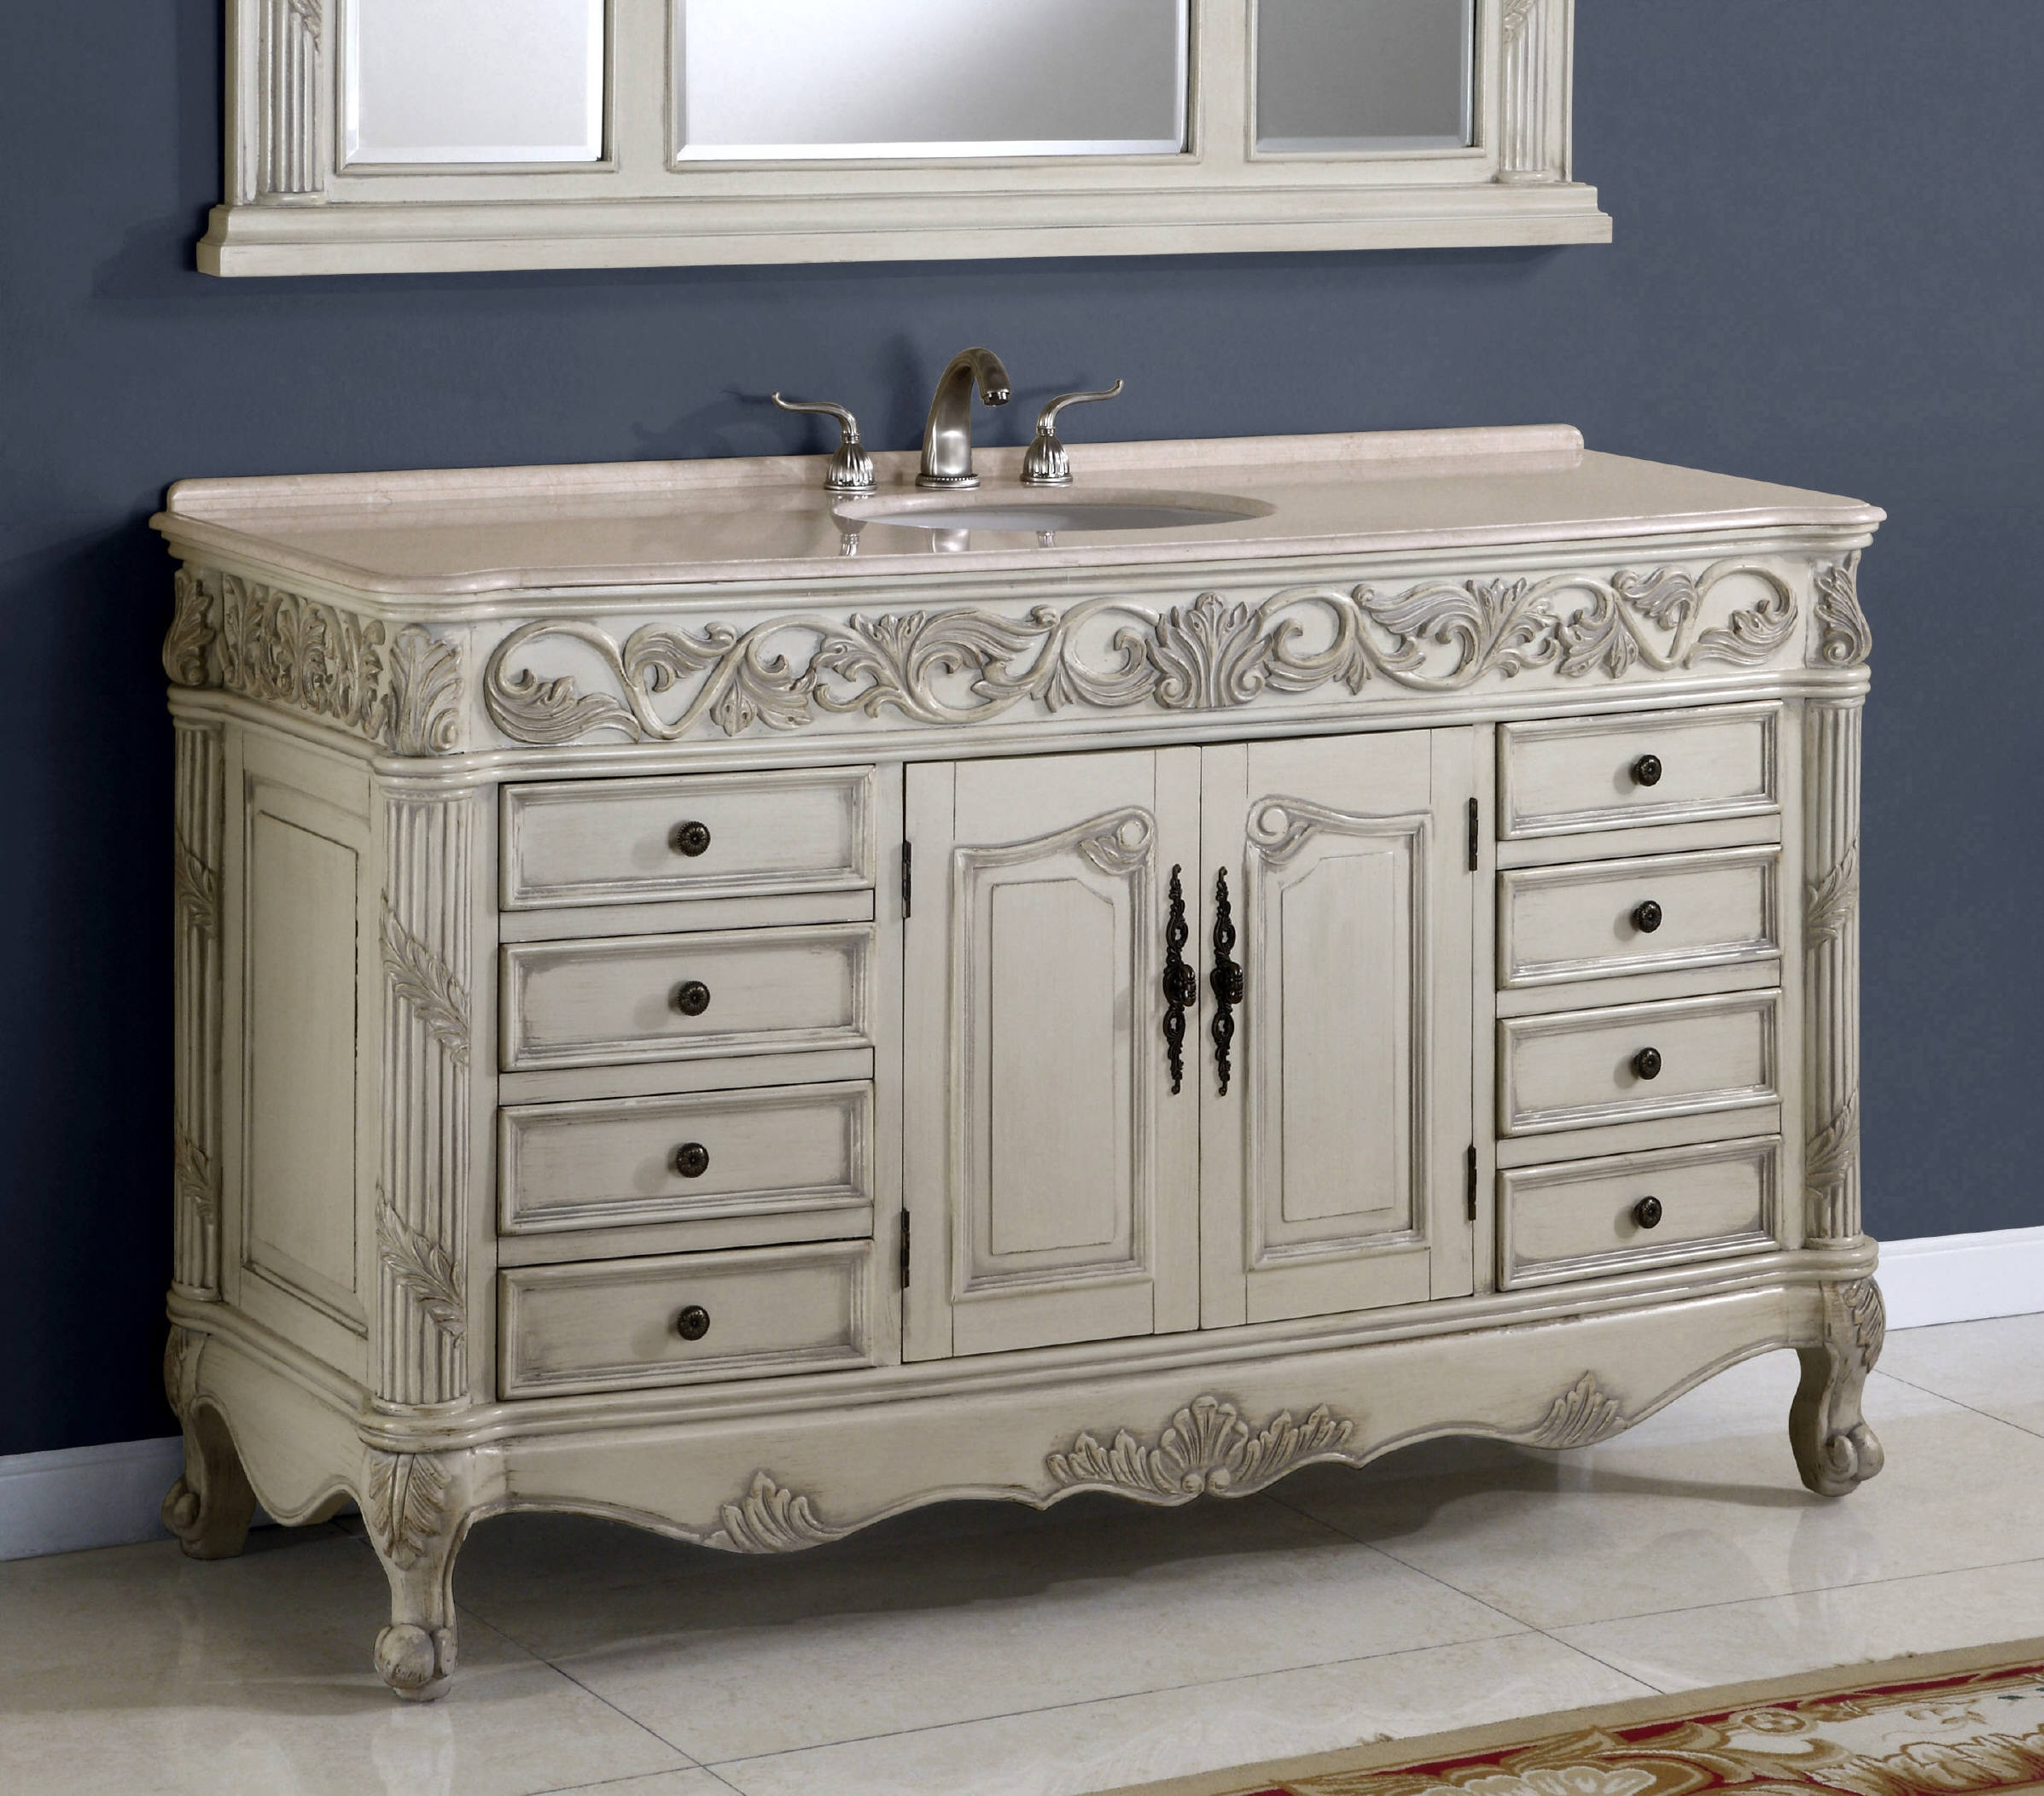 60 inch regent vanity single sink vanity vanity with mirror 60 in bathroom vanities with single sink